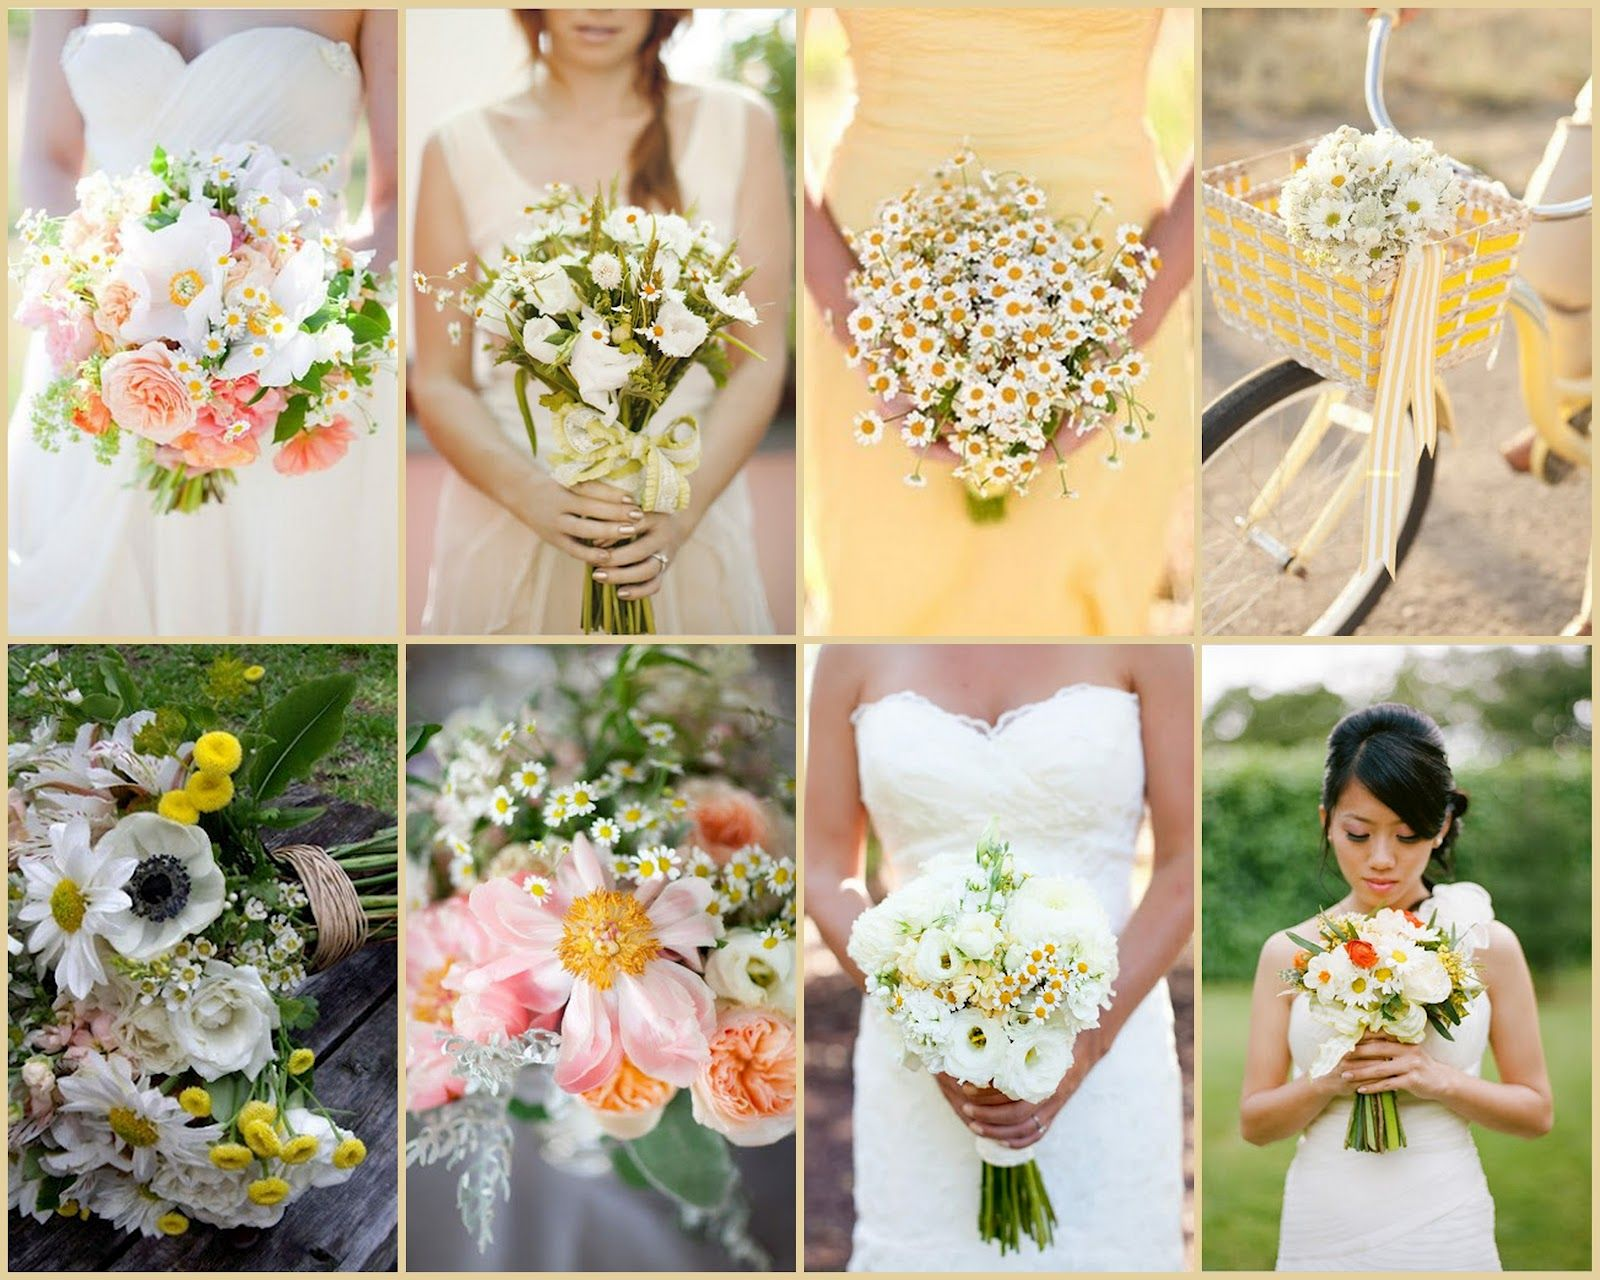 Paper wedding decoration ideas  Paper Doll Romance April Showers Bring May Flowers Lazy Daisy